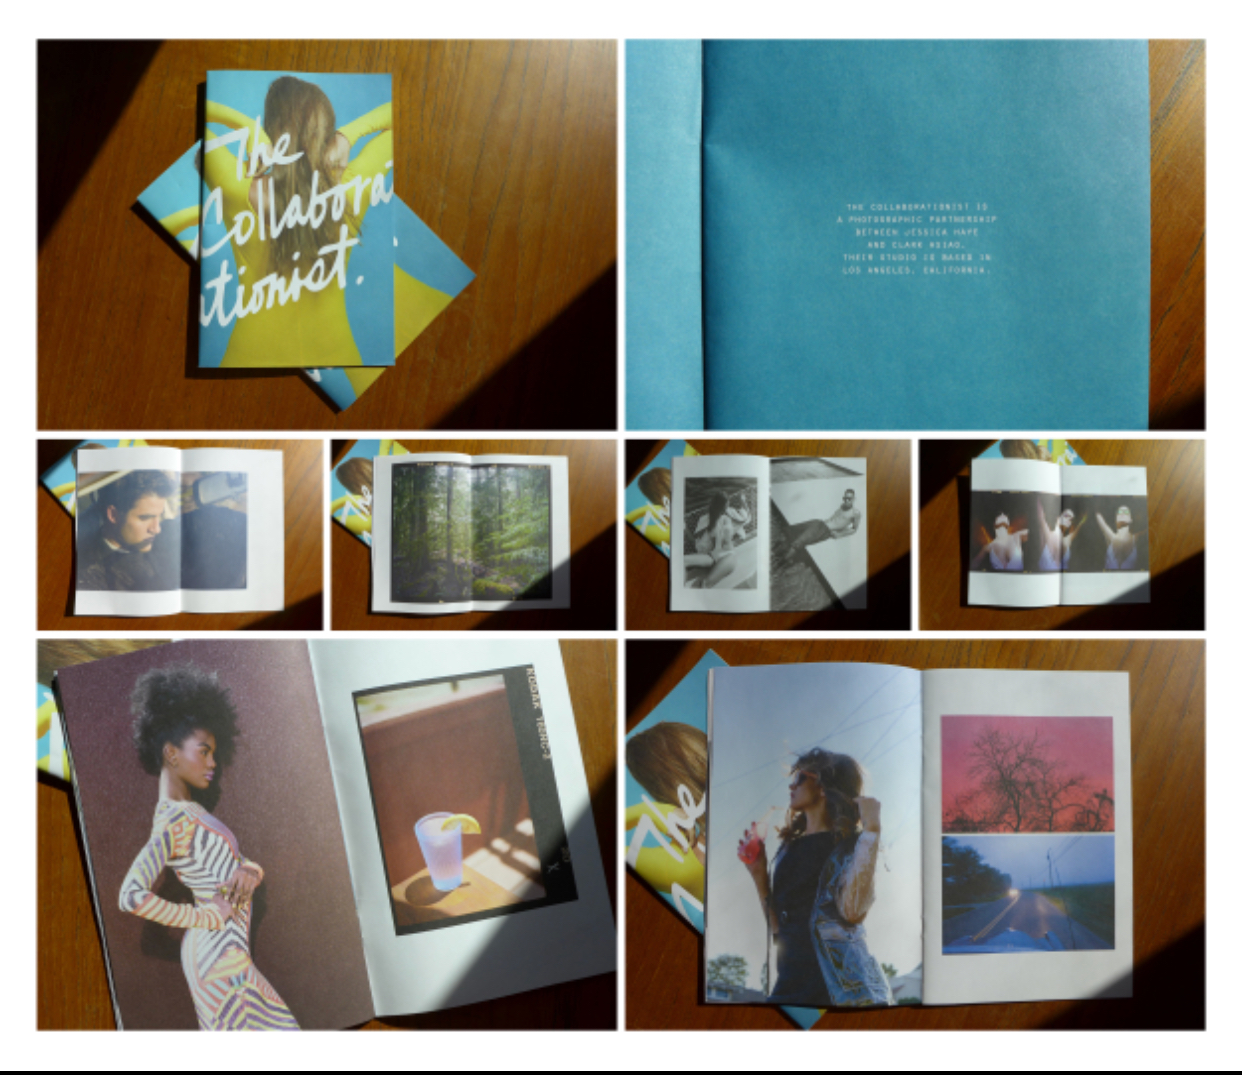 Yuri's work: Promotional zine for photographers The Collaborationist. Photo: Yuri Angela Chung